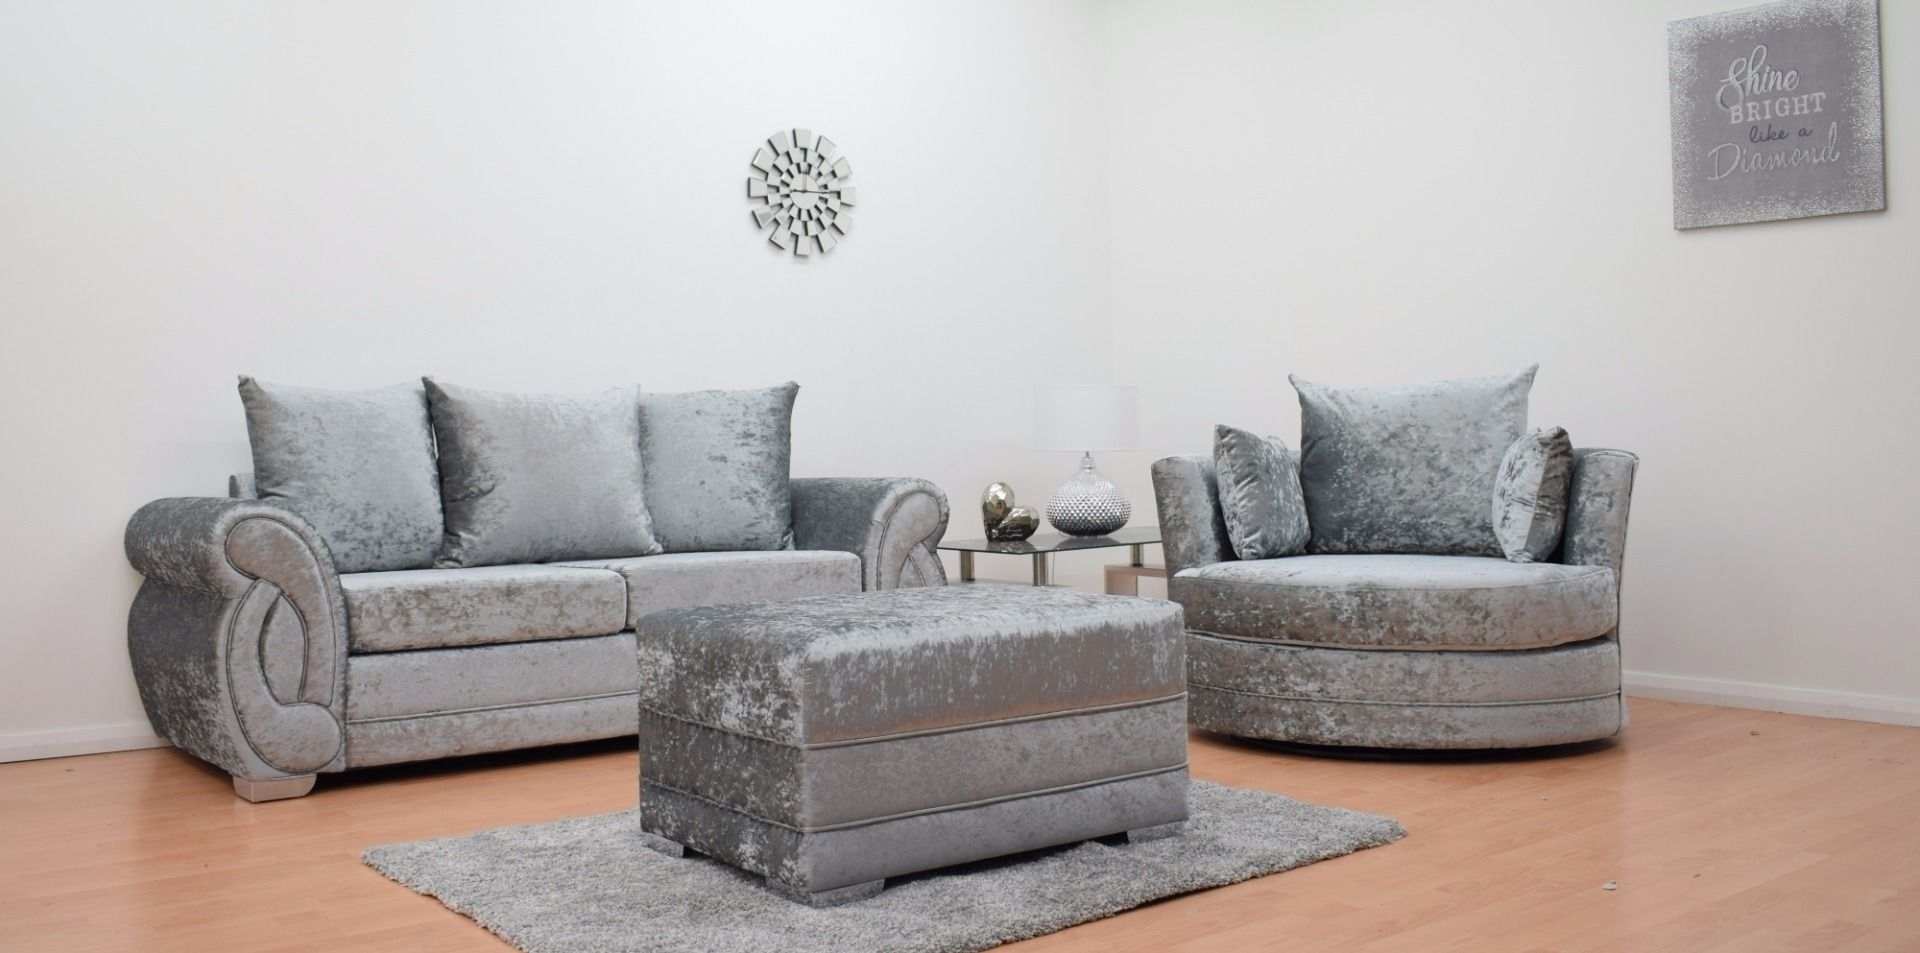 Furnish365 | Chloe 3 Seater Sofa + Cuddle Chair + Footstool – Silver Within 3 Seater Sofas And Cuddle Chairs (View 9 of 10)